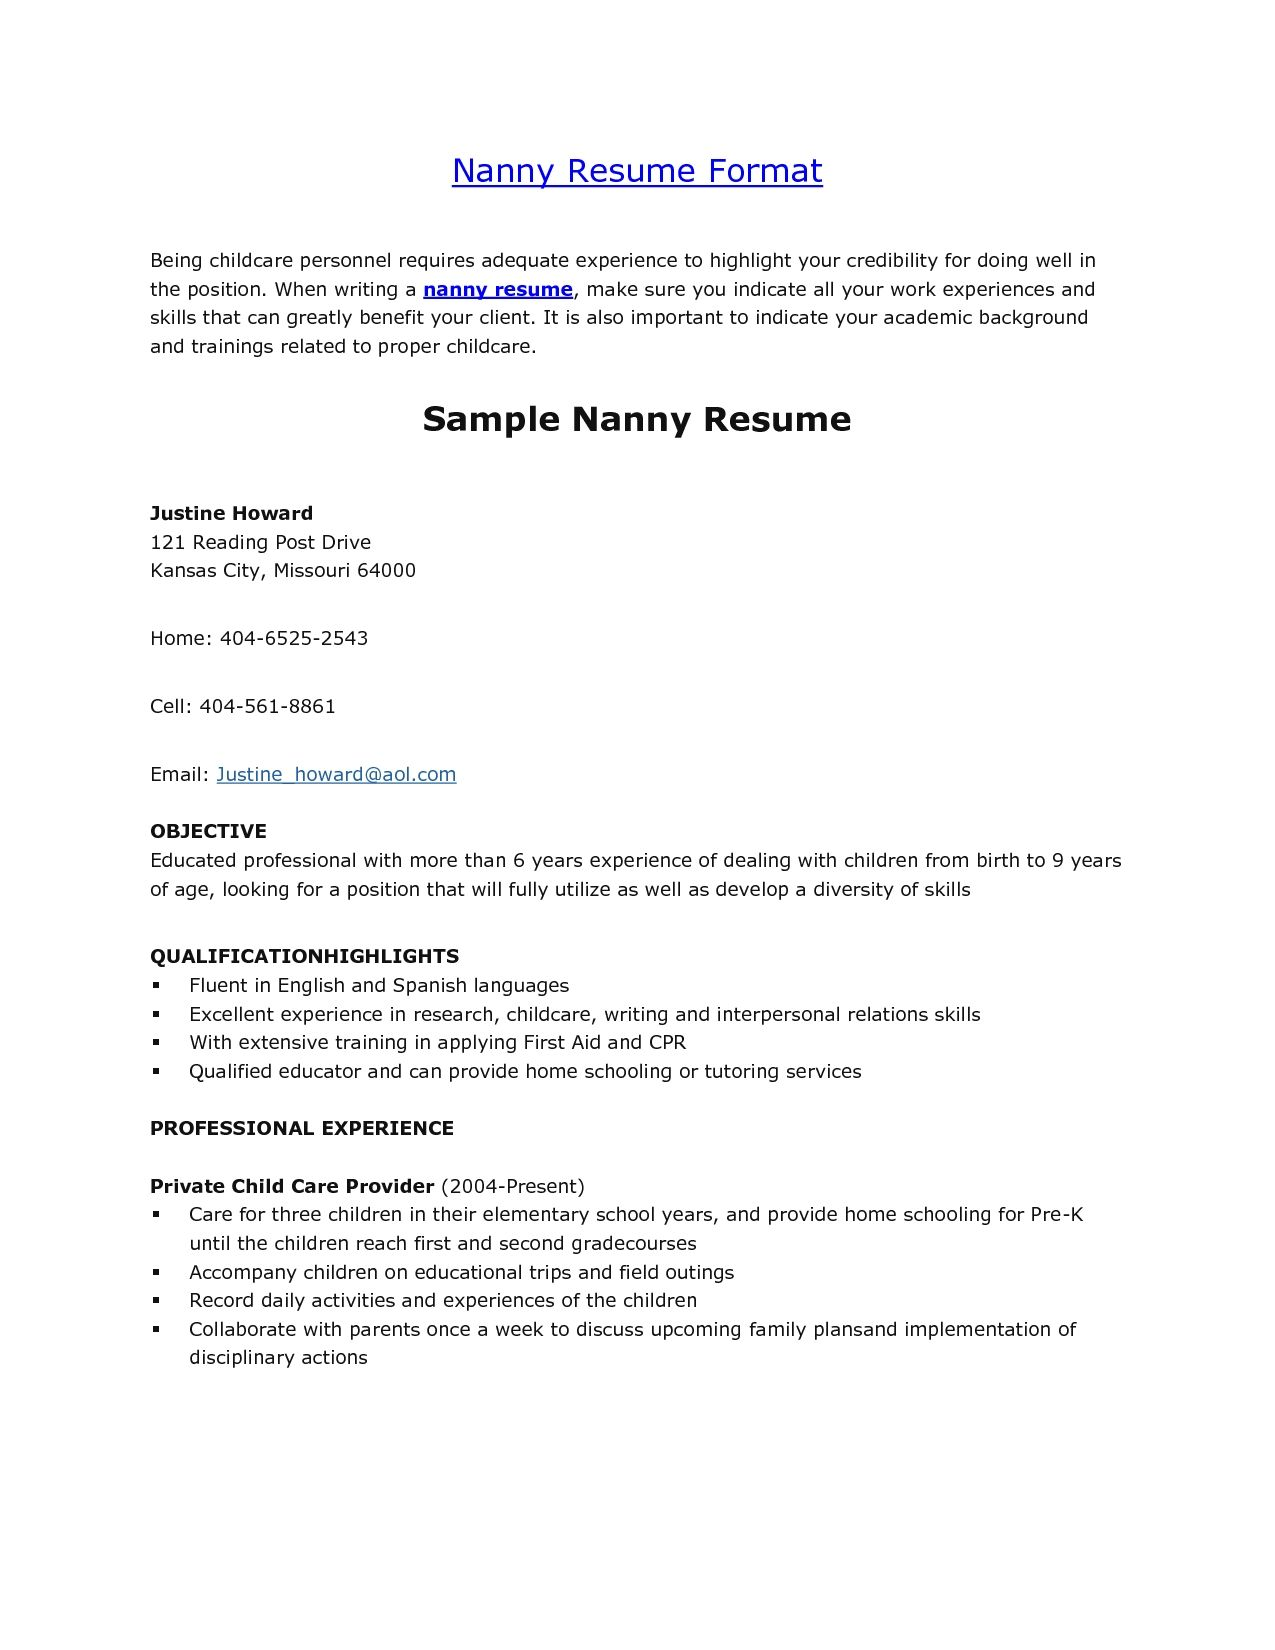 Resume For Hospital Job What To Put On A Cover Letter For Resumecompares Linux